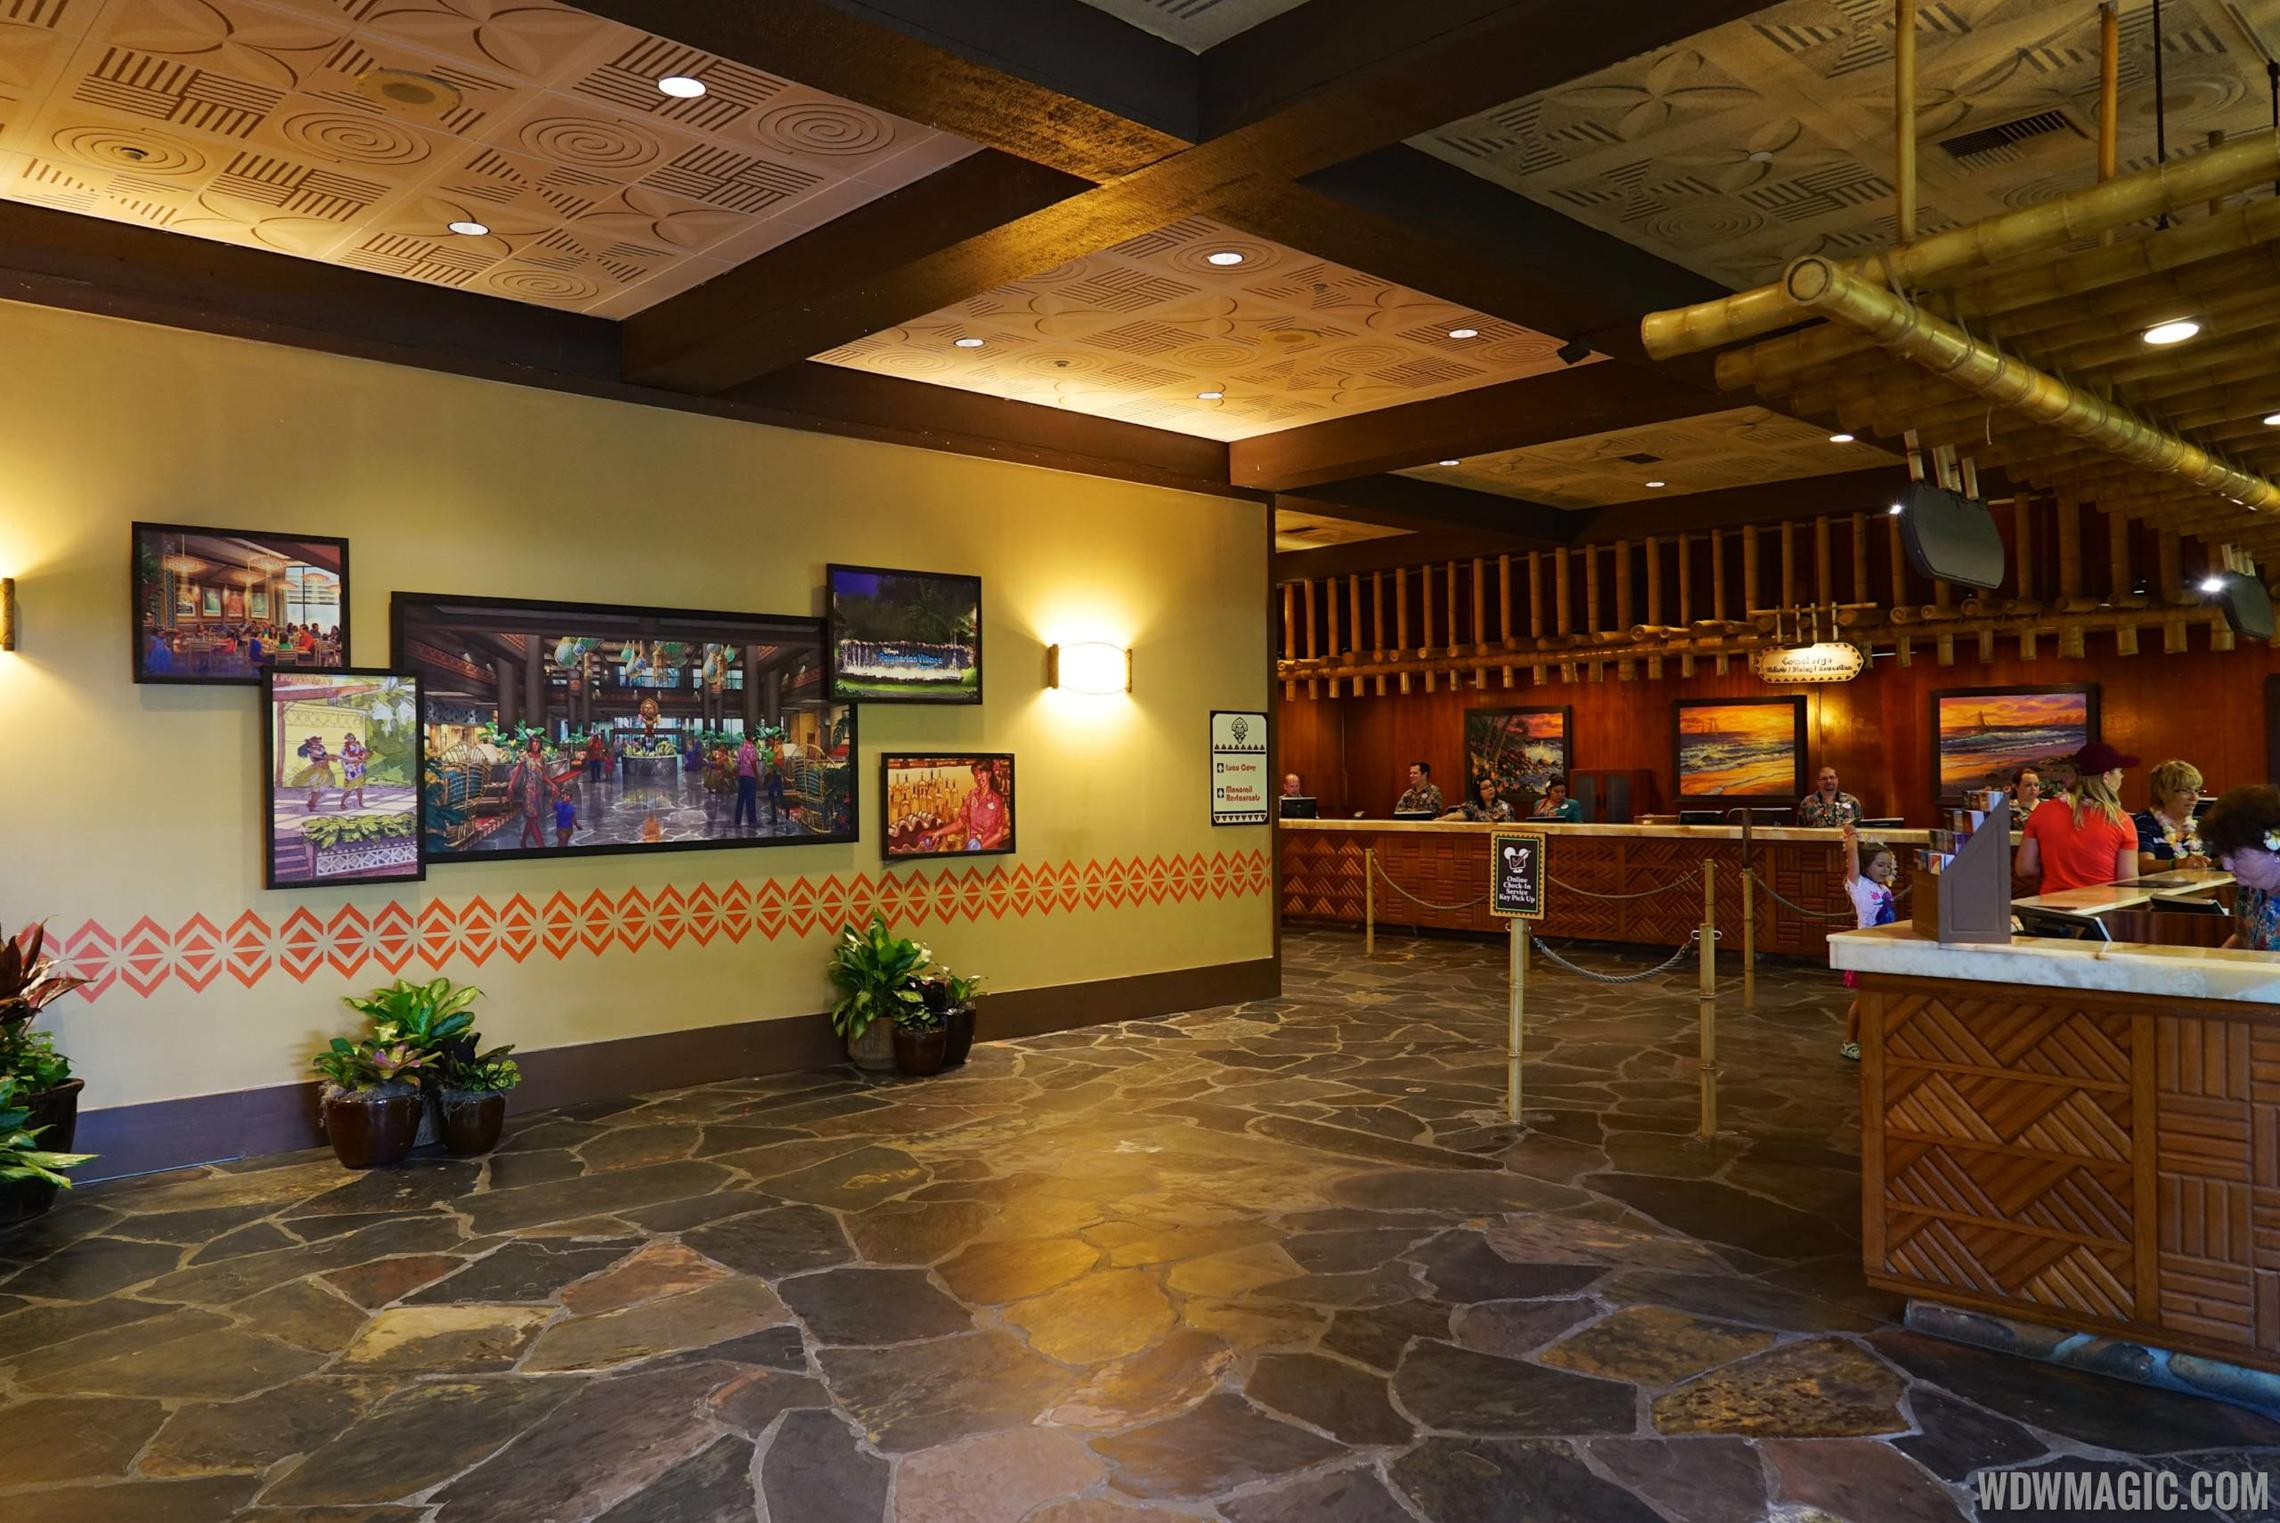 The front desk area in the lobby